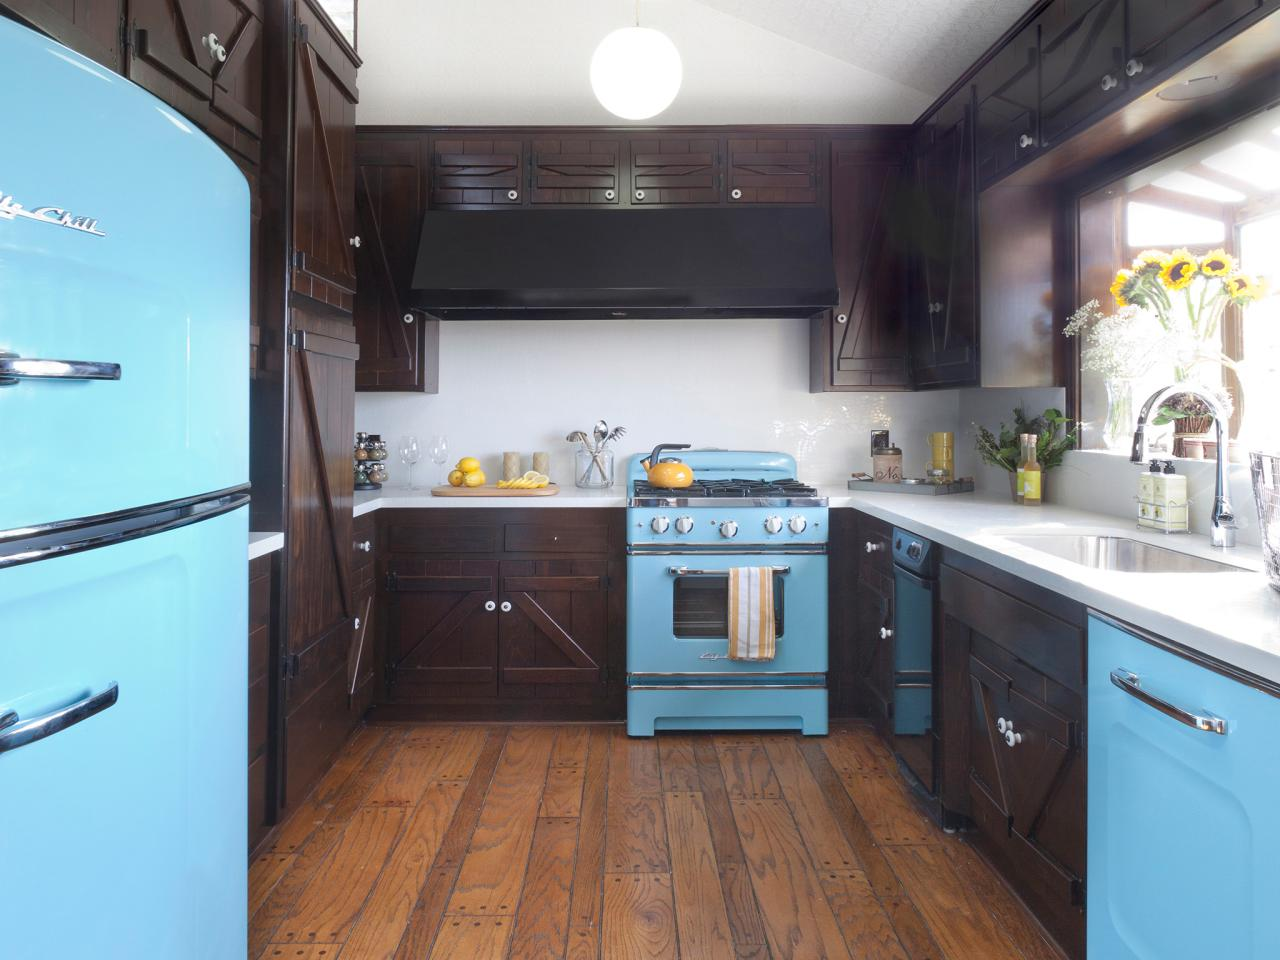 blue rustic kitchen turquoise blue retro appliances offset the dark